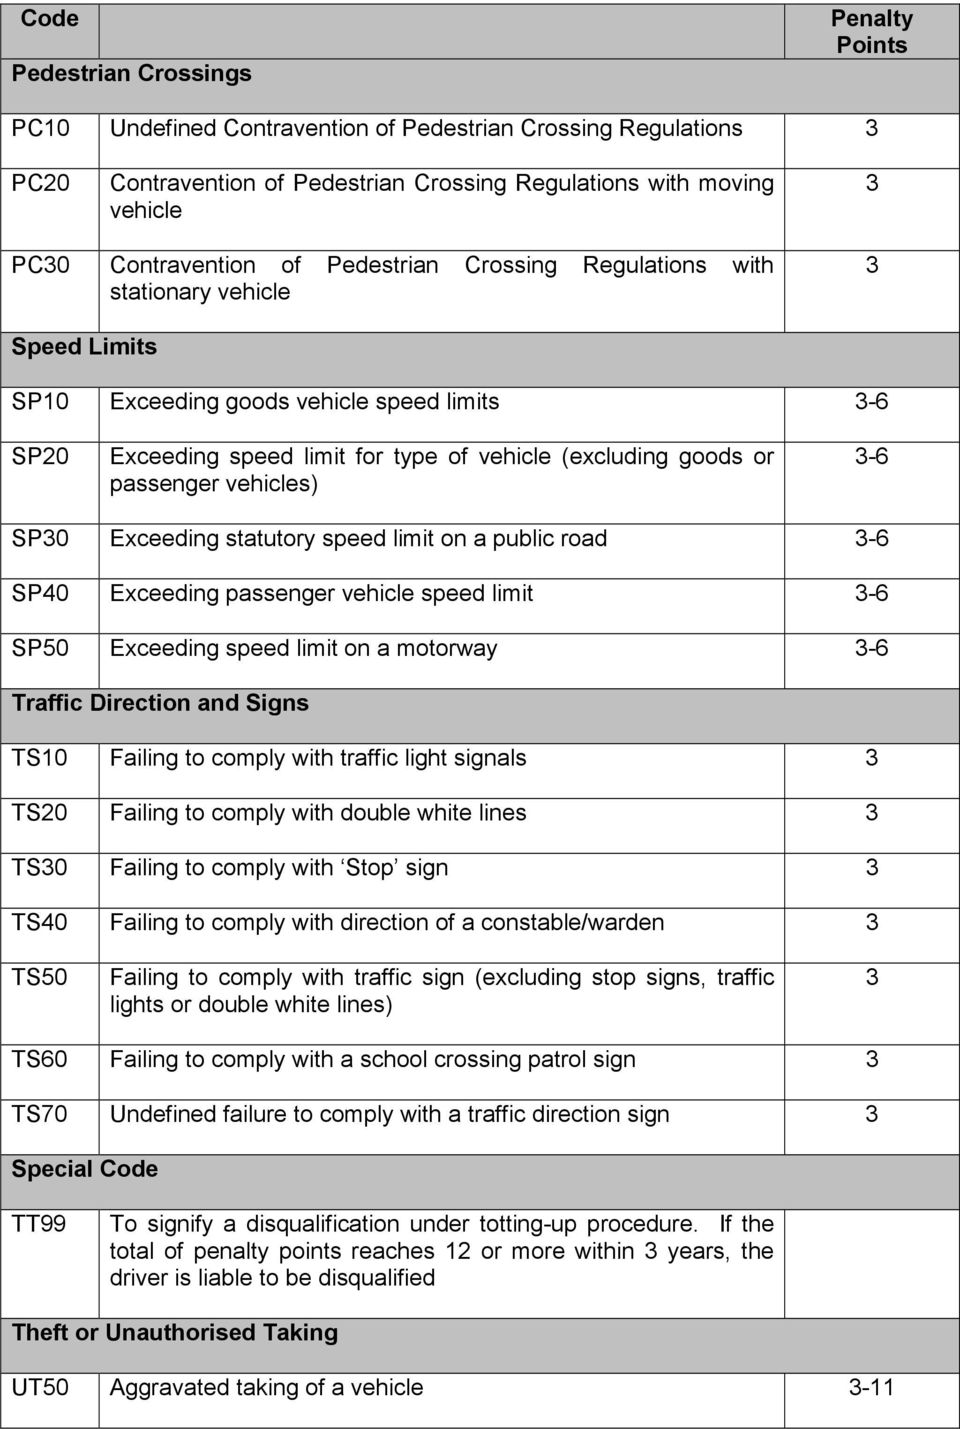 vehicles) 3-6 SP30 Exceeding statutory speed limit on a public road 3-6 SP40 Exceeding passenger vehicle speed limit 3-6 SP50 Exceeding speed limit on a motorway 3-6 Traffic Direction and Signs TS10